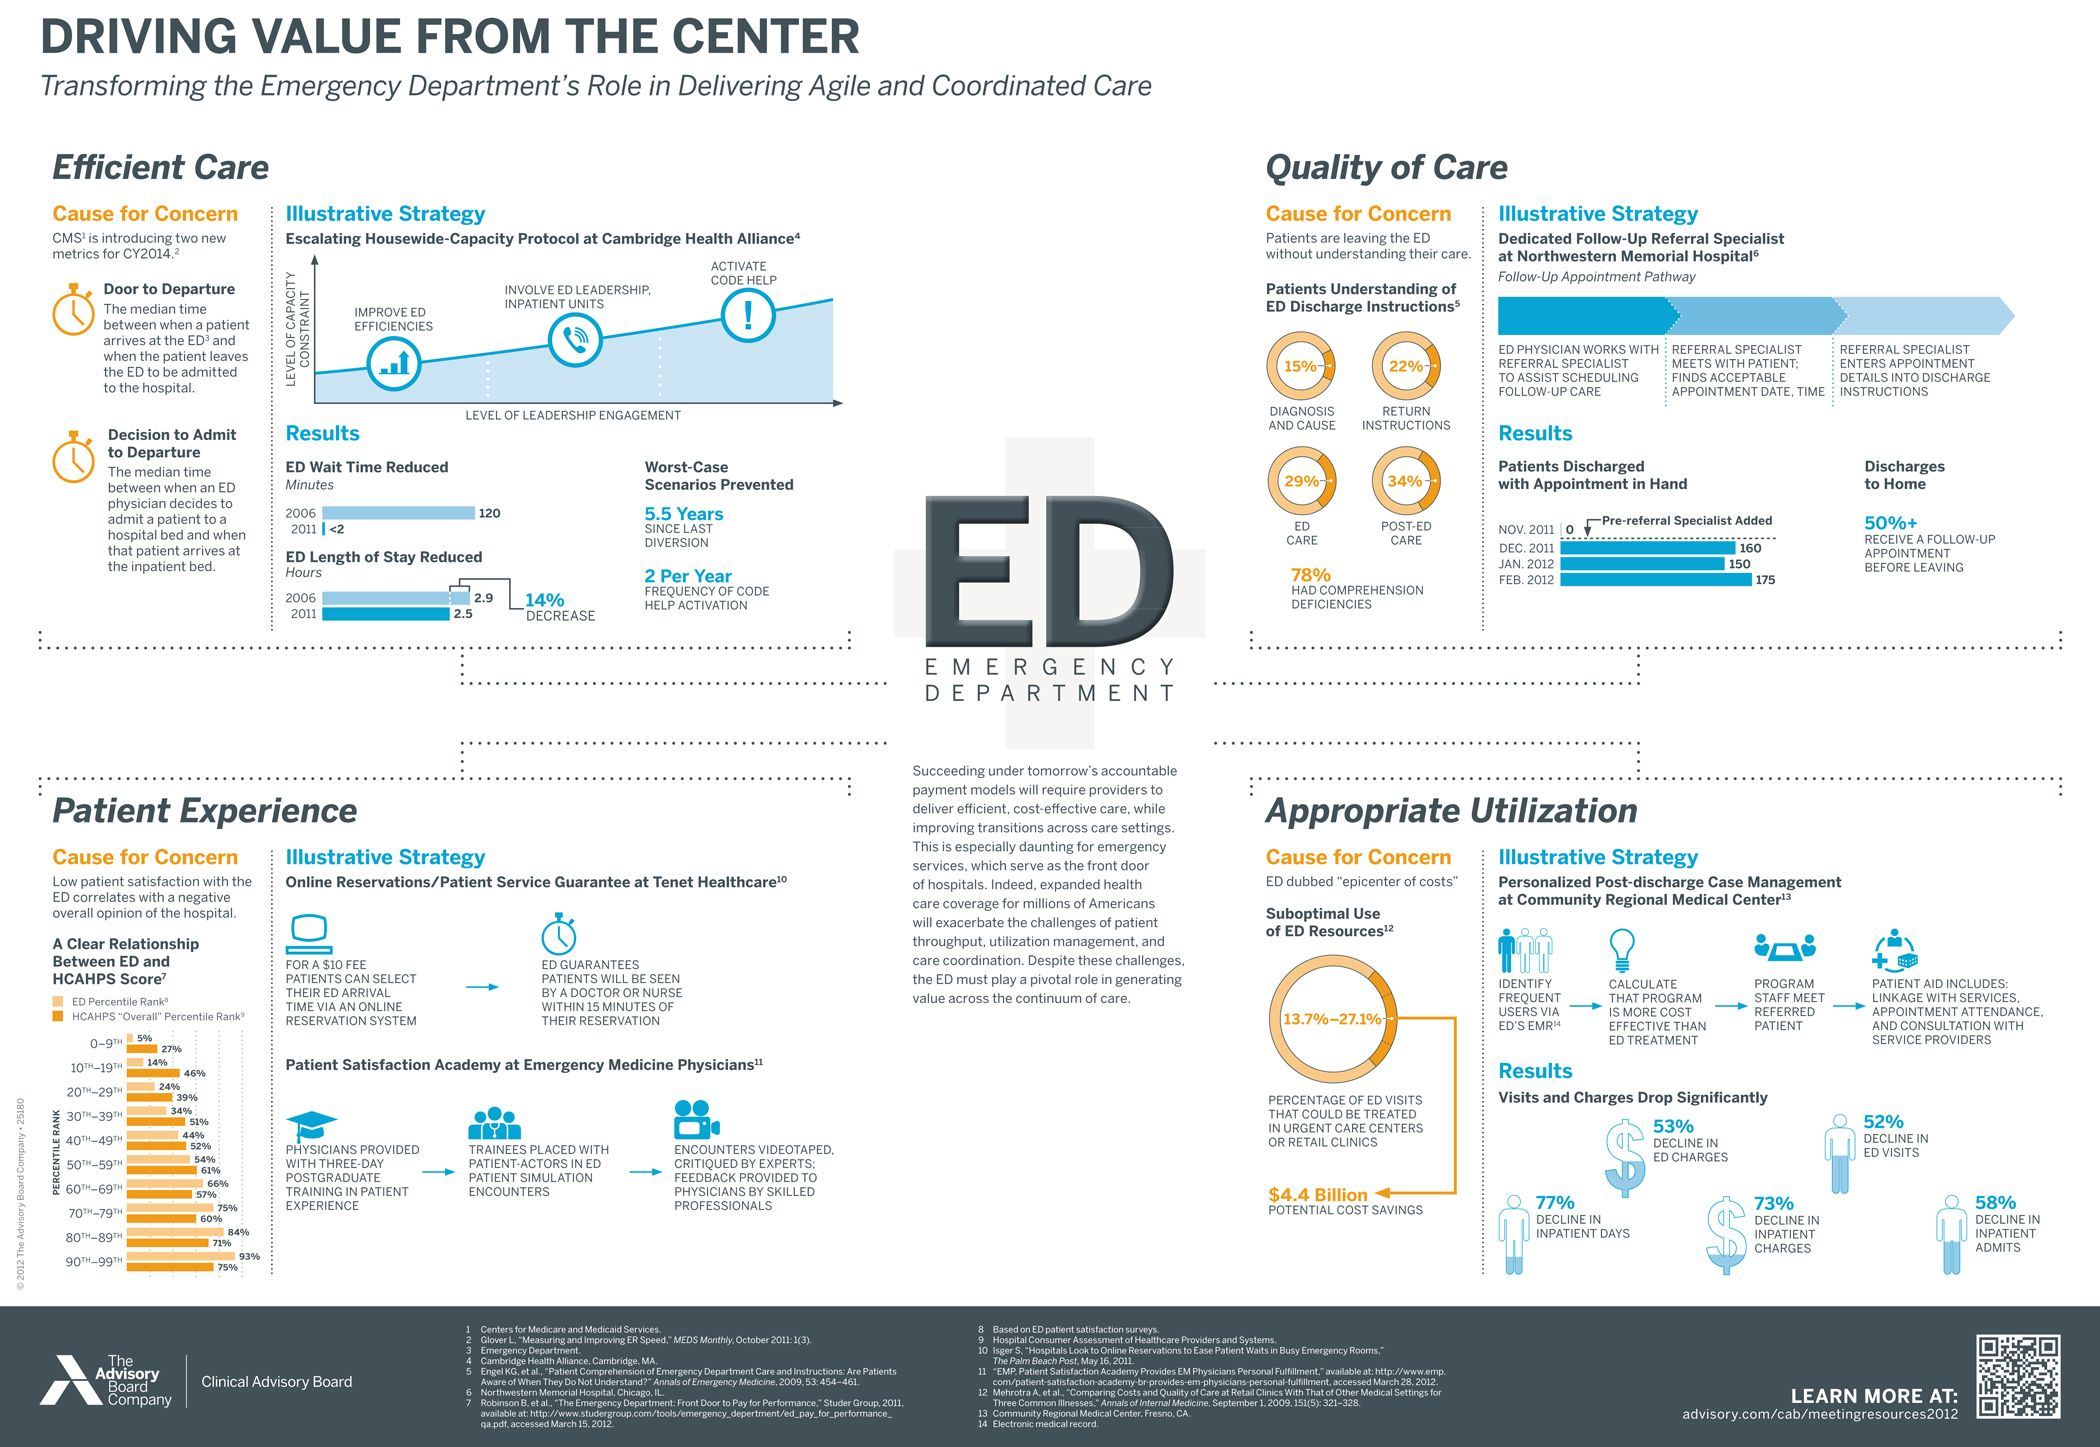 Learn how to transform the eds role in delivering agile